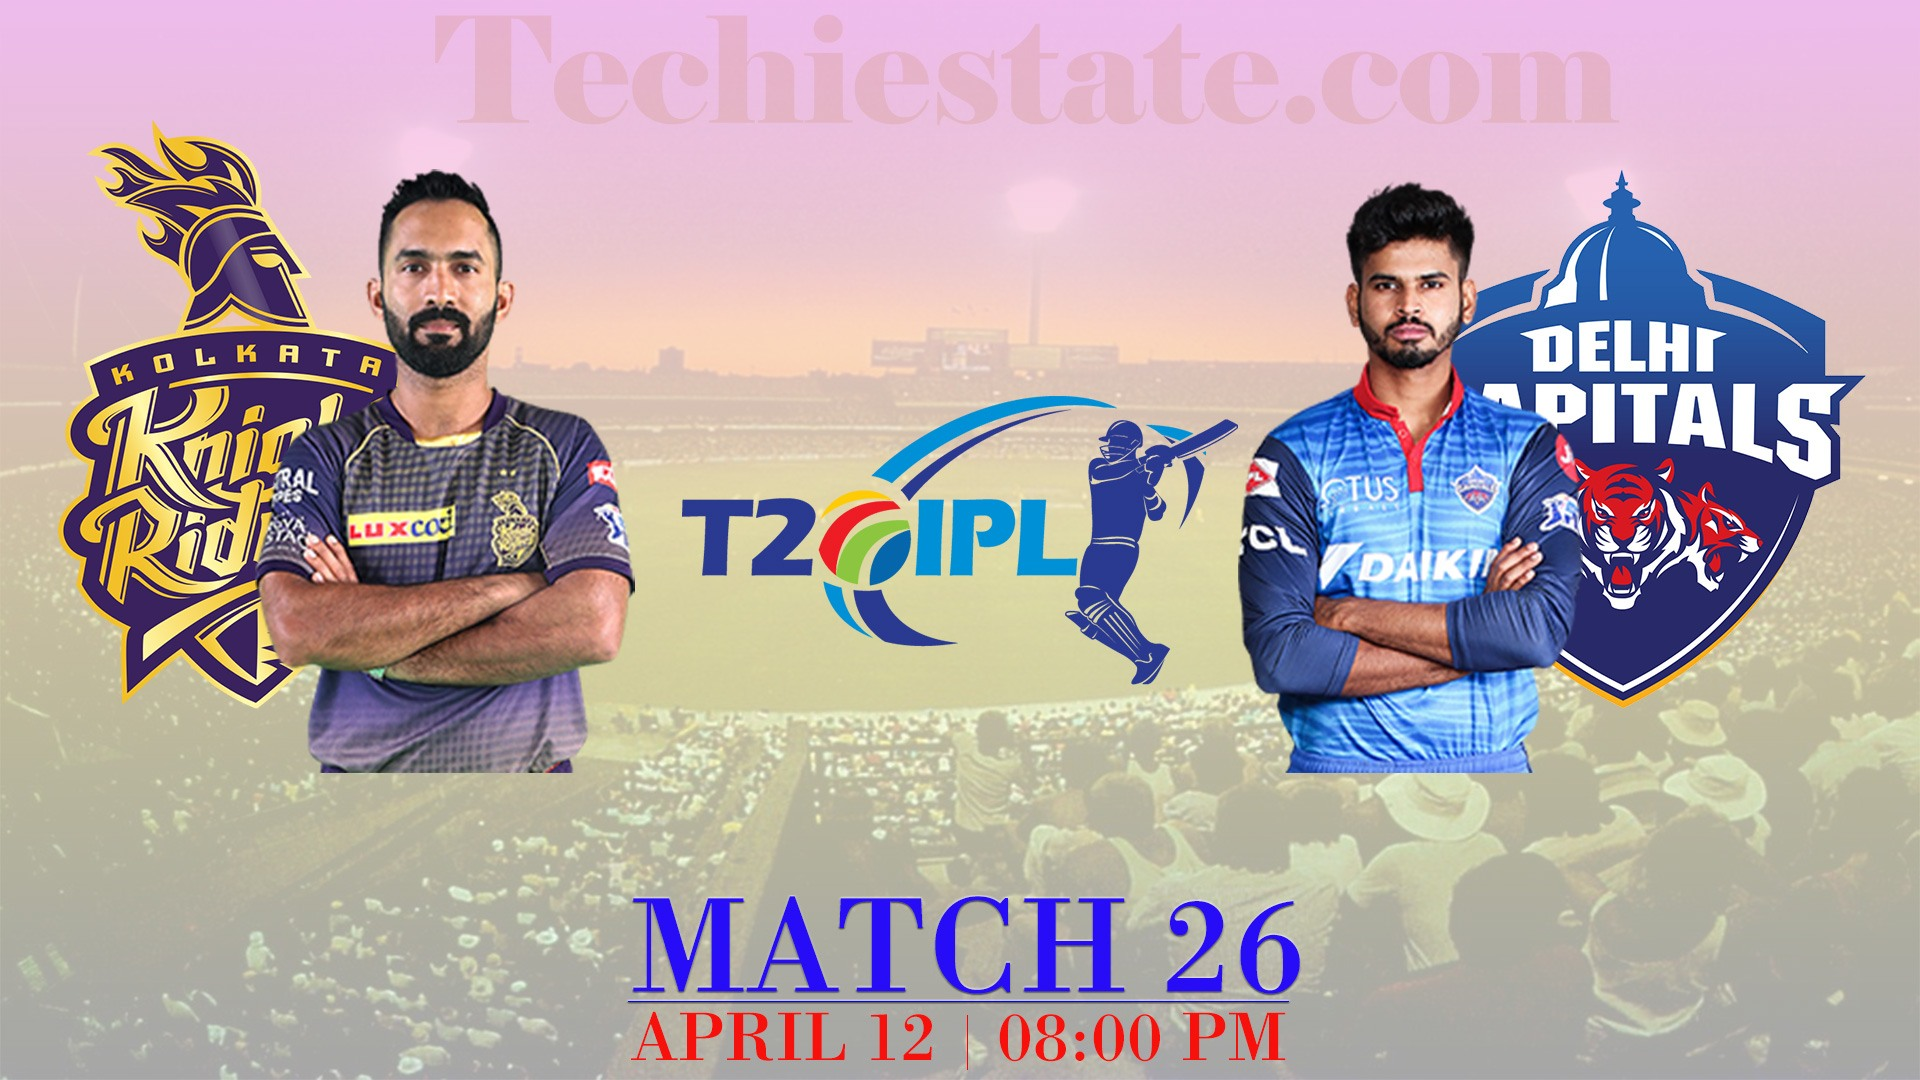 KKR Vs DC IPL 2019 Match Prediction, Live Streaming Cricket Score Info